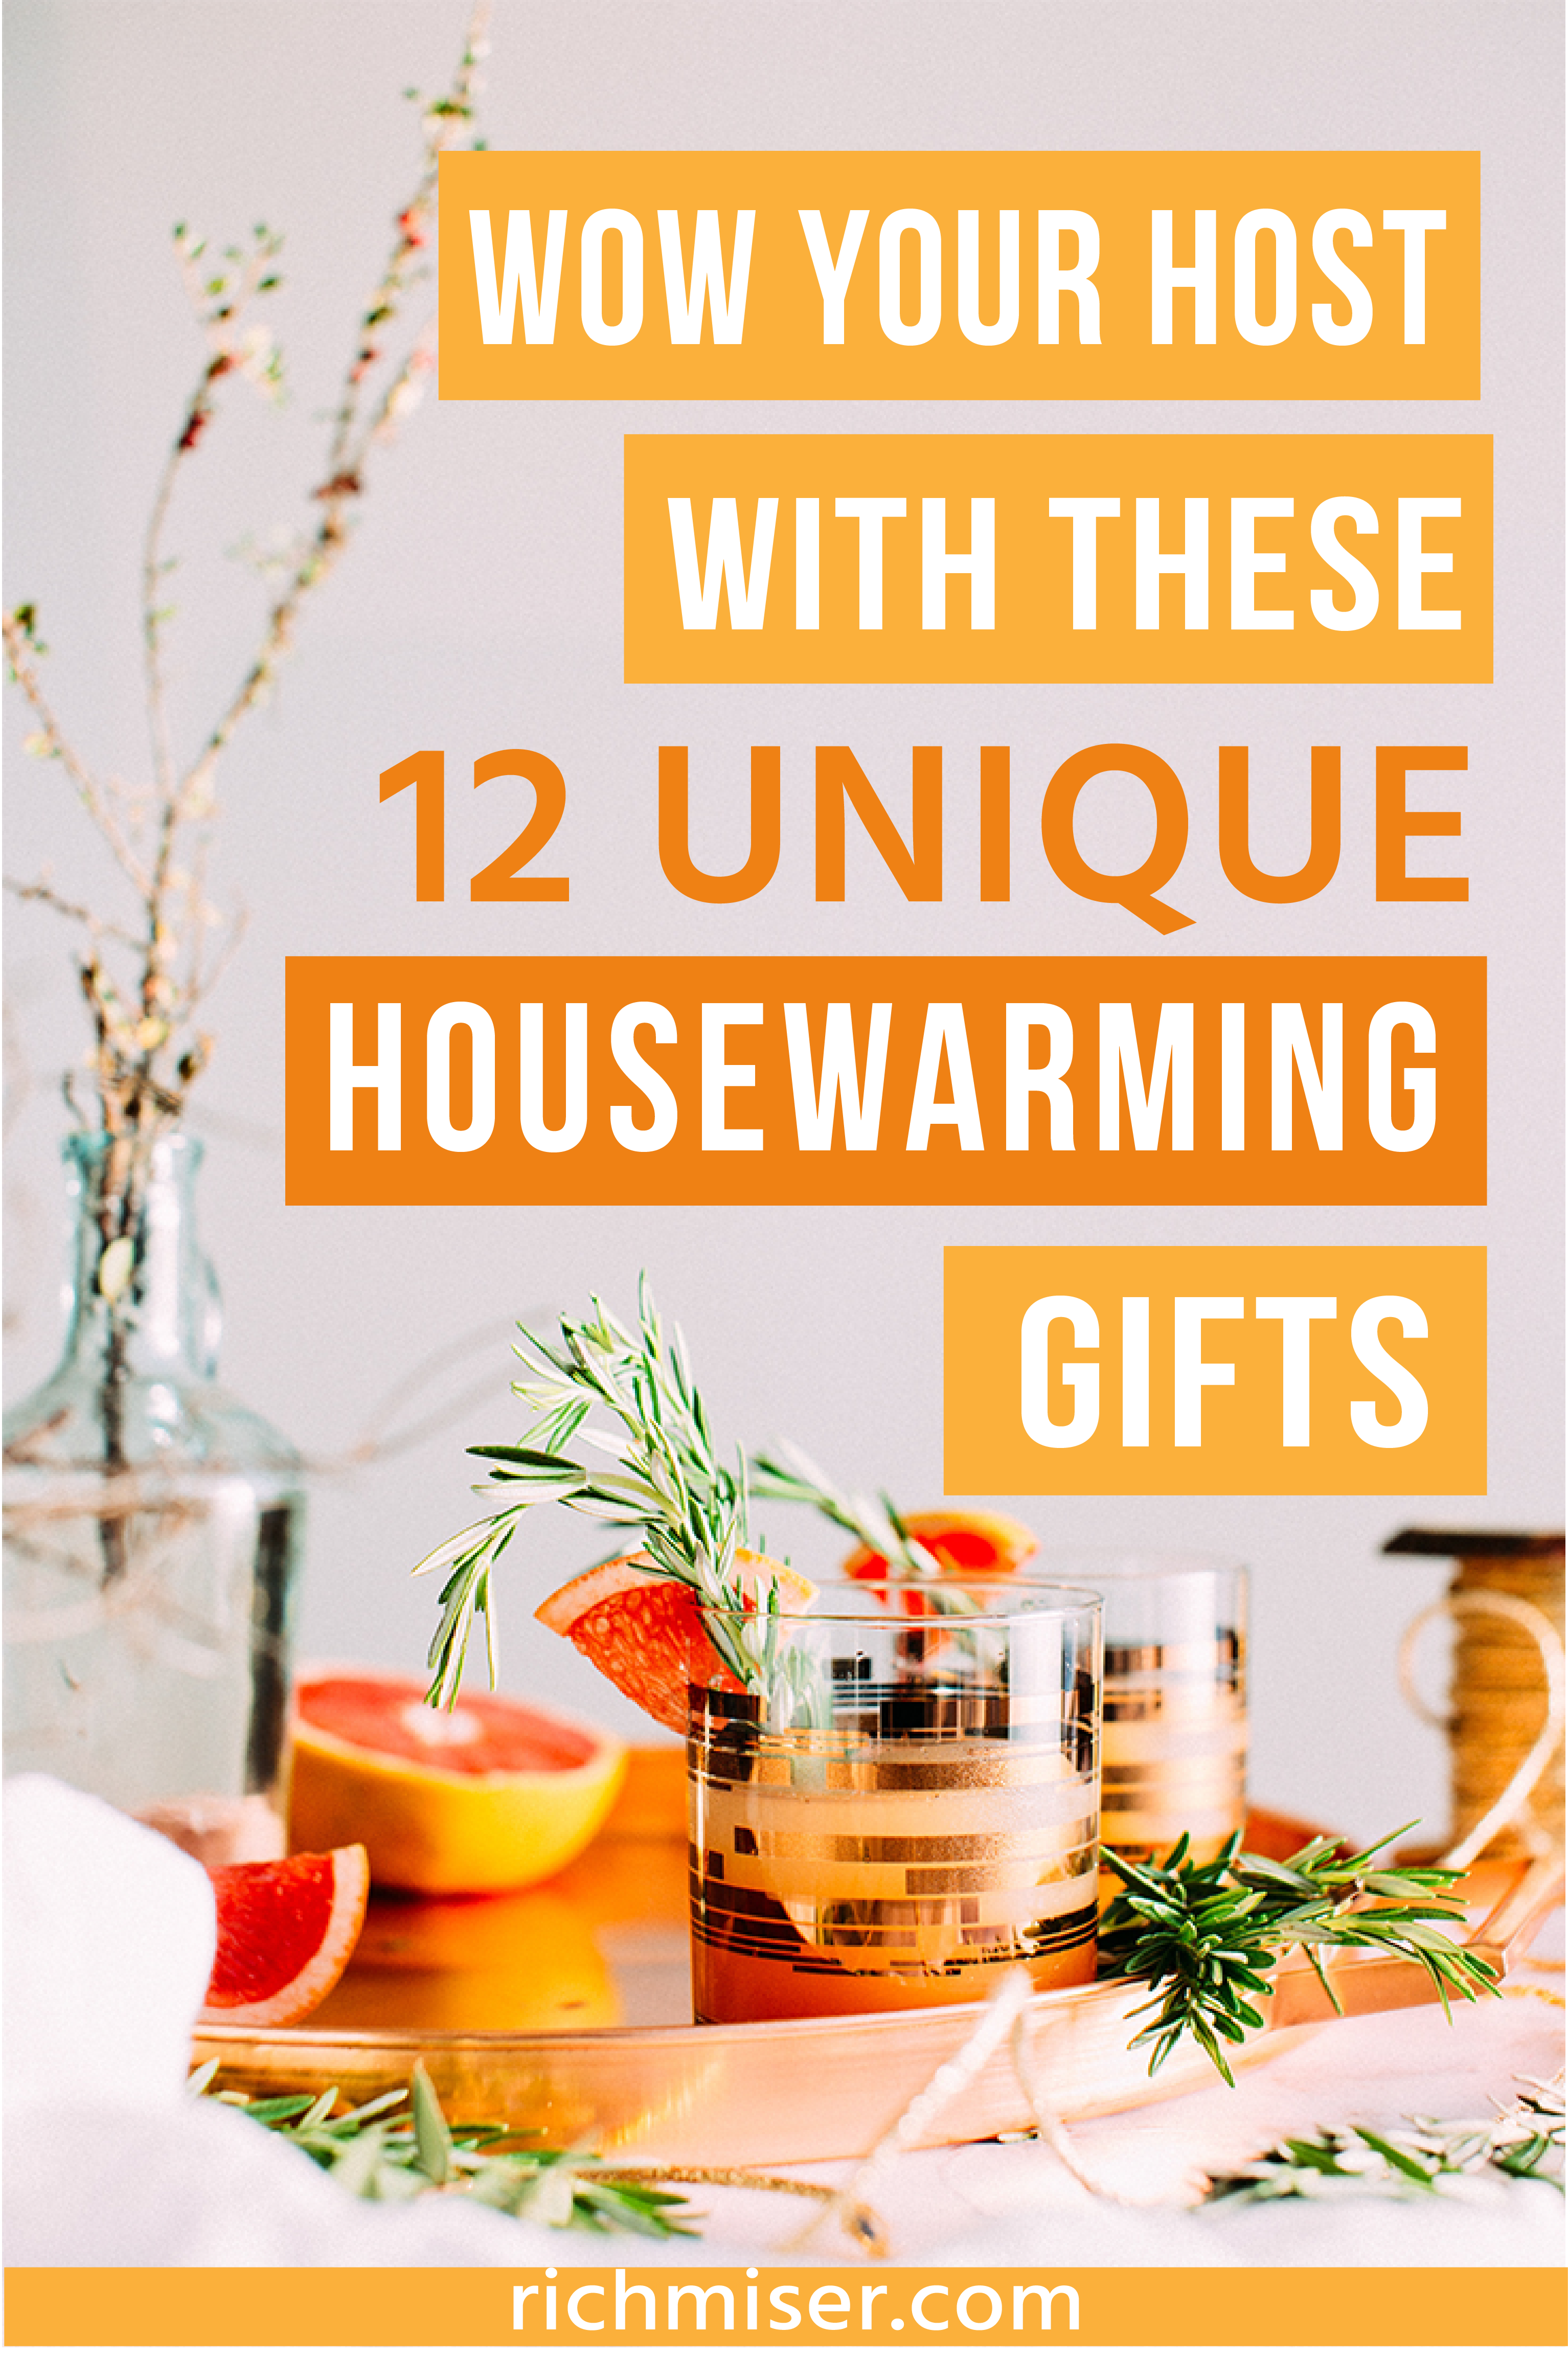 Wow Your Host With These 12 Unique Housewarming Gifts. housewarming gift basket housewarming gift ideas housewarming gift DIY housewarming gift for guy ...  sc 1 st  Pinterest & Wow Your Host With These 12 Unique Housewarming Gifts   Group Board ...